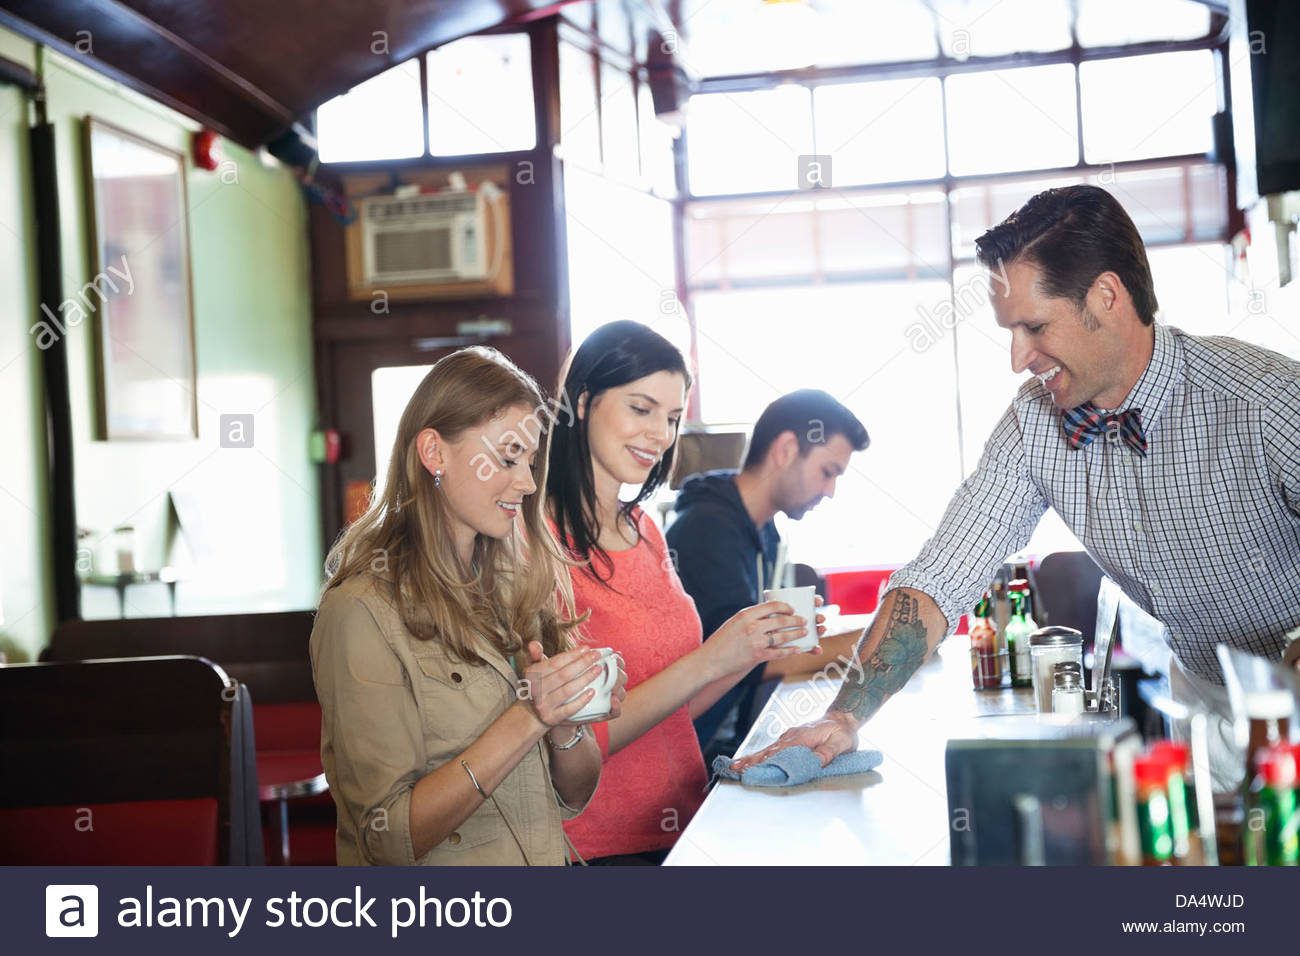 Male diner owner wiping counter for customers - Stock Image